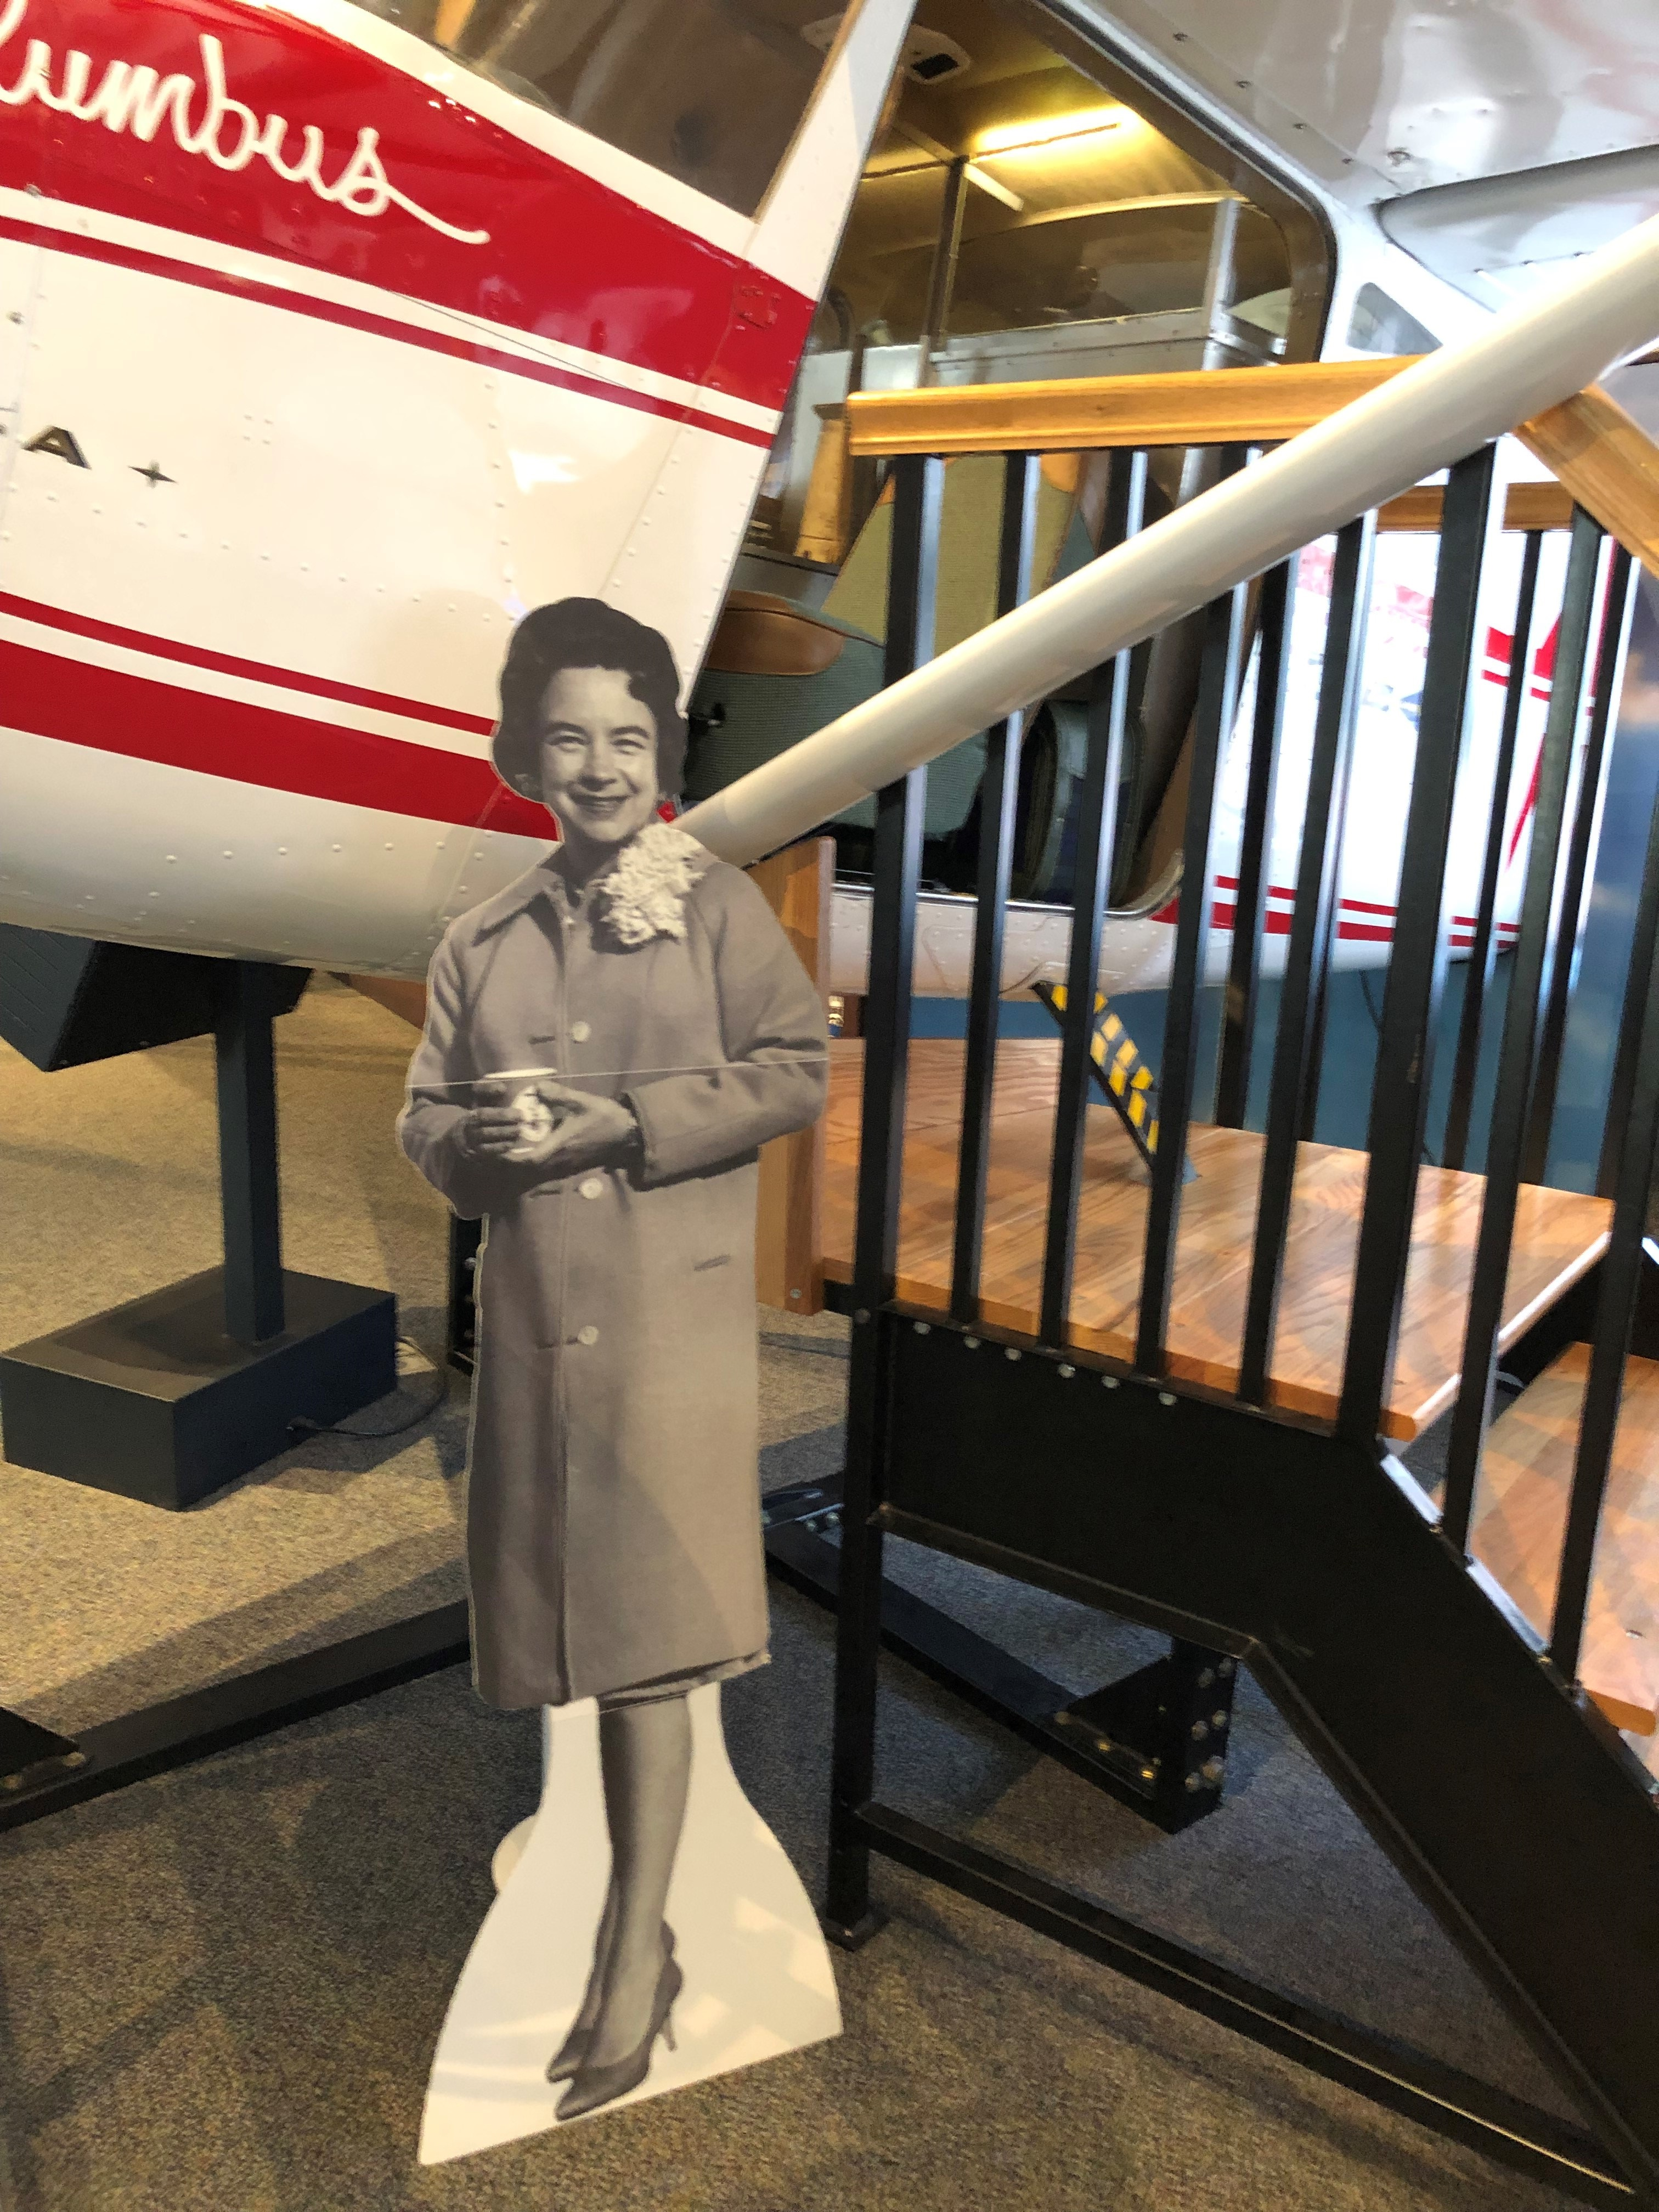 Climb aboard the Spirit of Columbus, but don't forget to take a picture with the pilot herself!